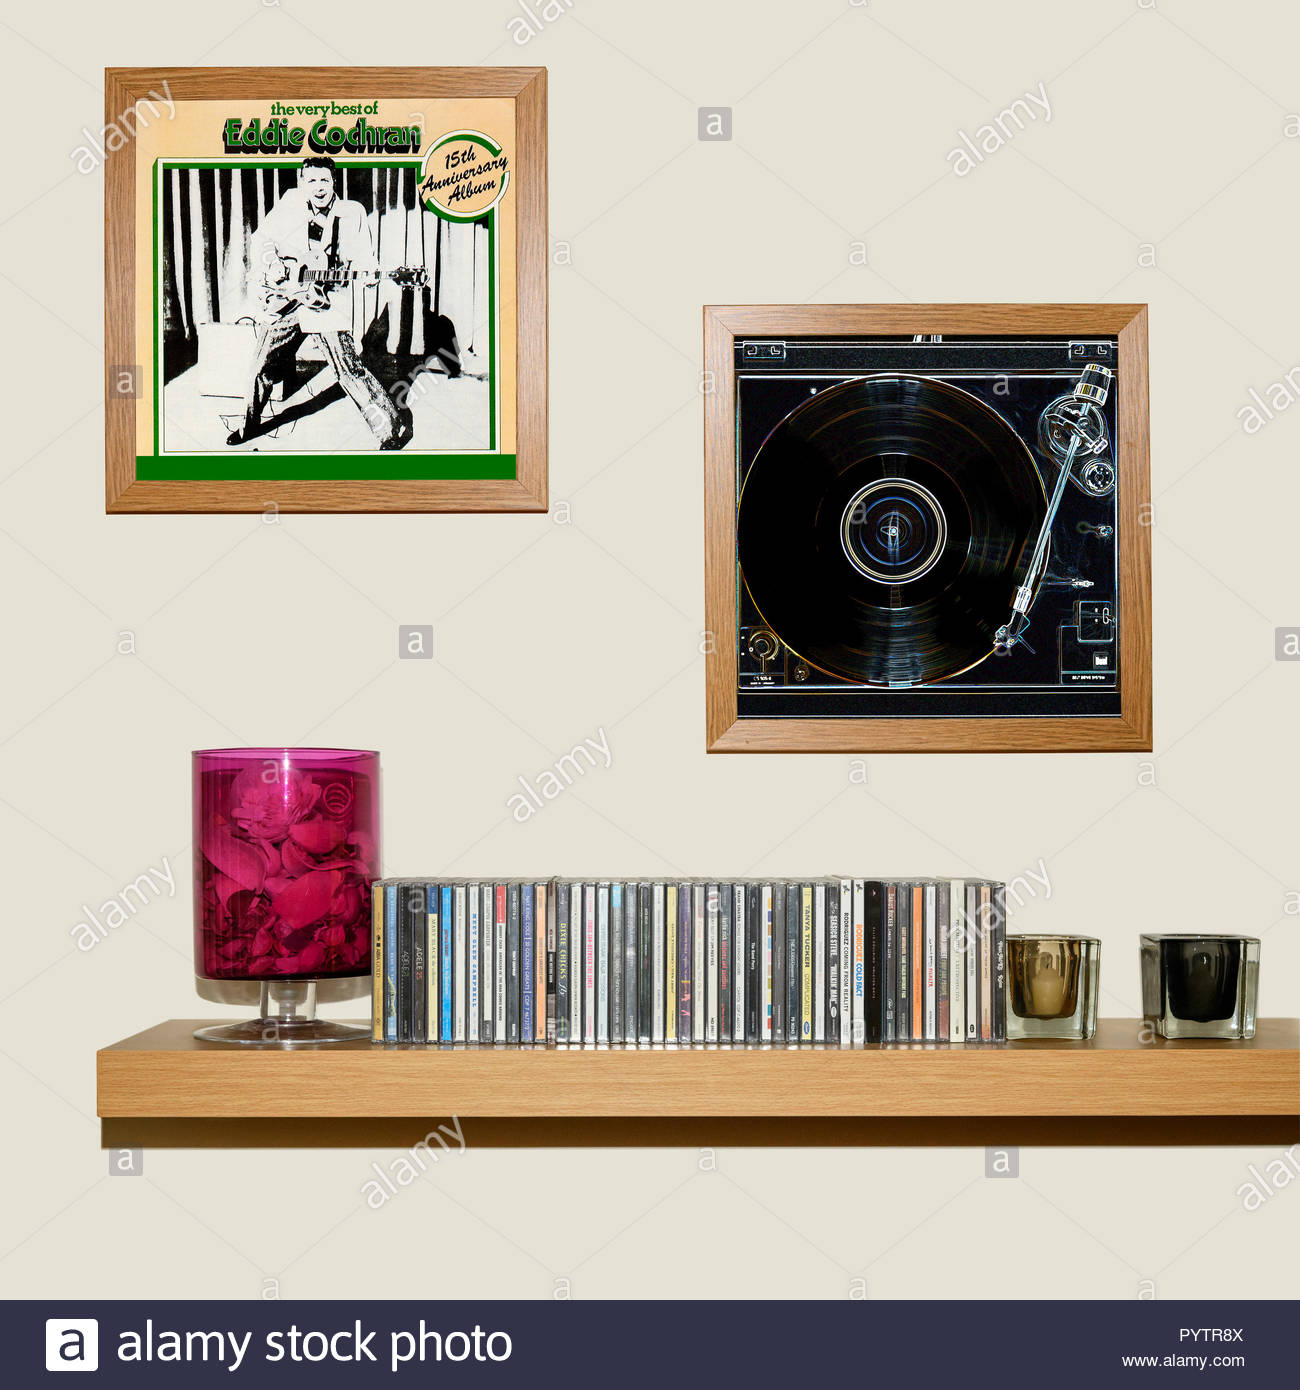 CD Collection and framed Eddie Cochran best of album, England - Stock Image